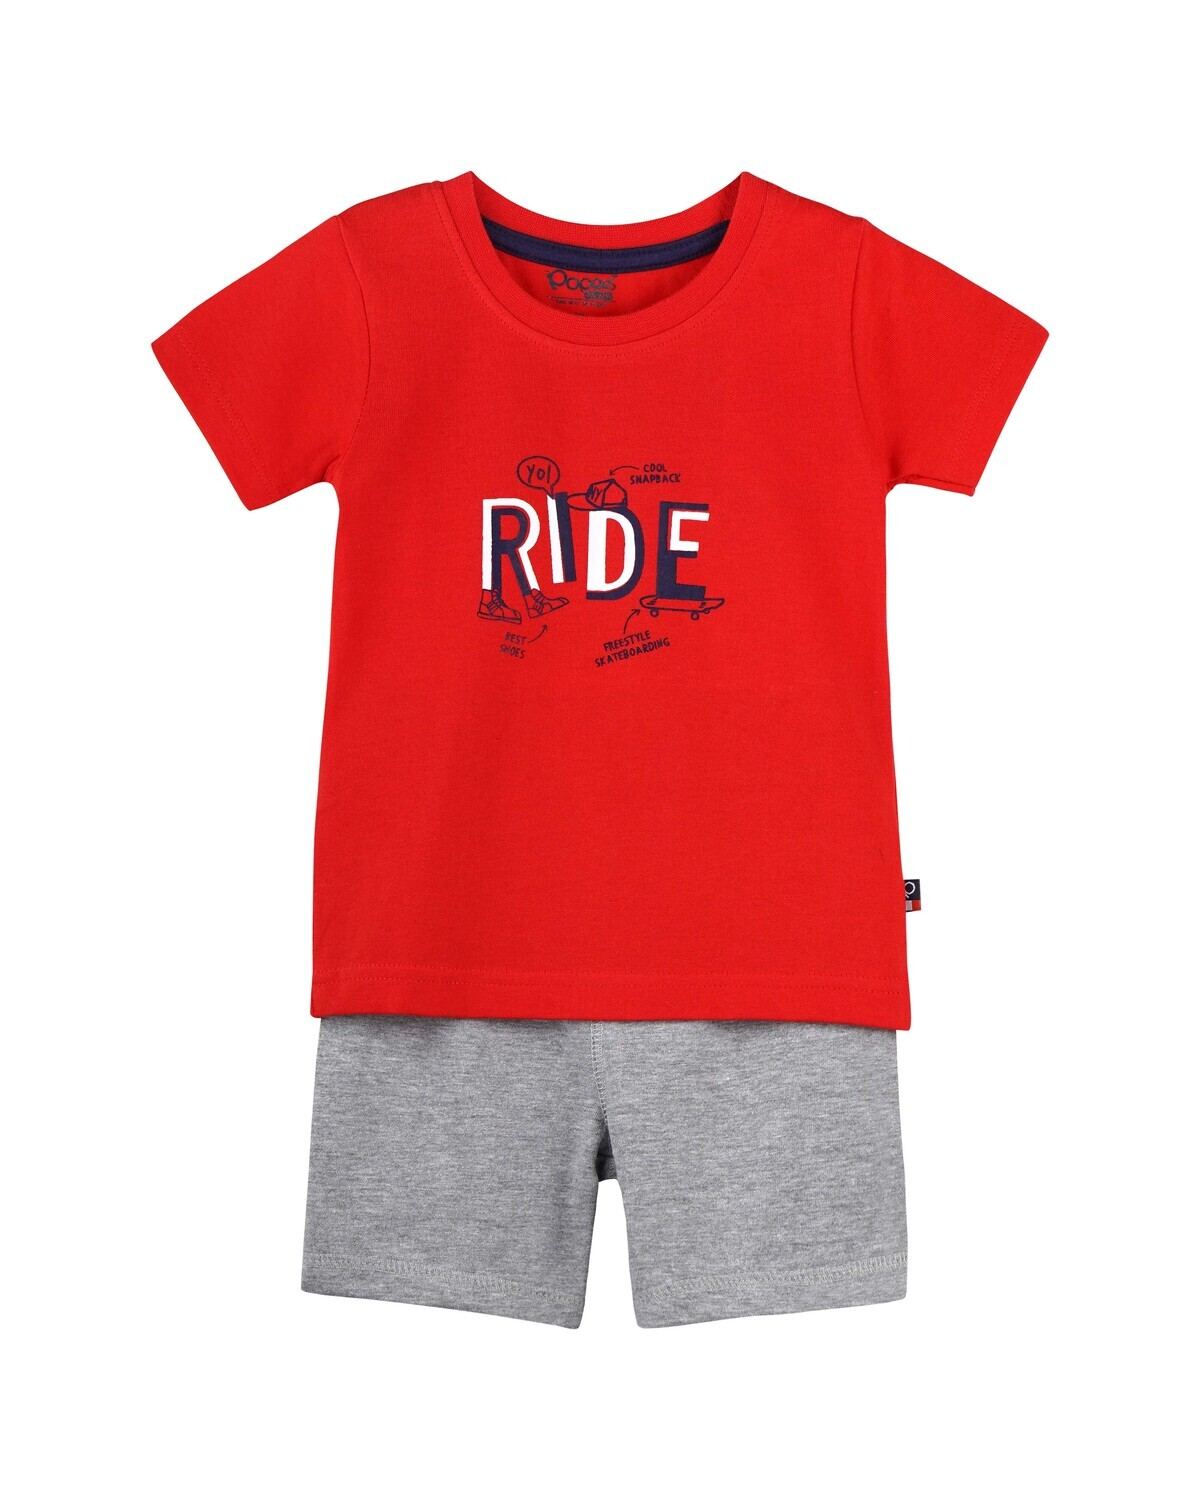 CADOC Poppy Red Half Sleeve Top and Shorts for Baby Boys